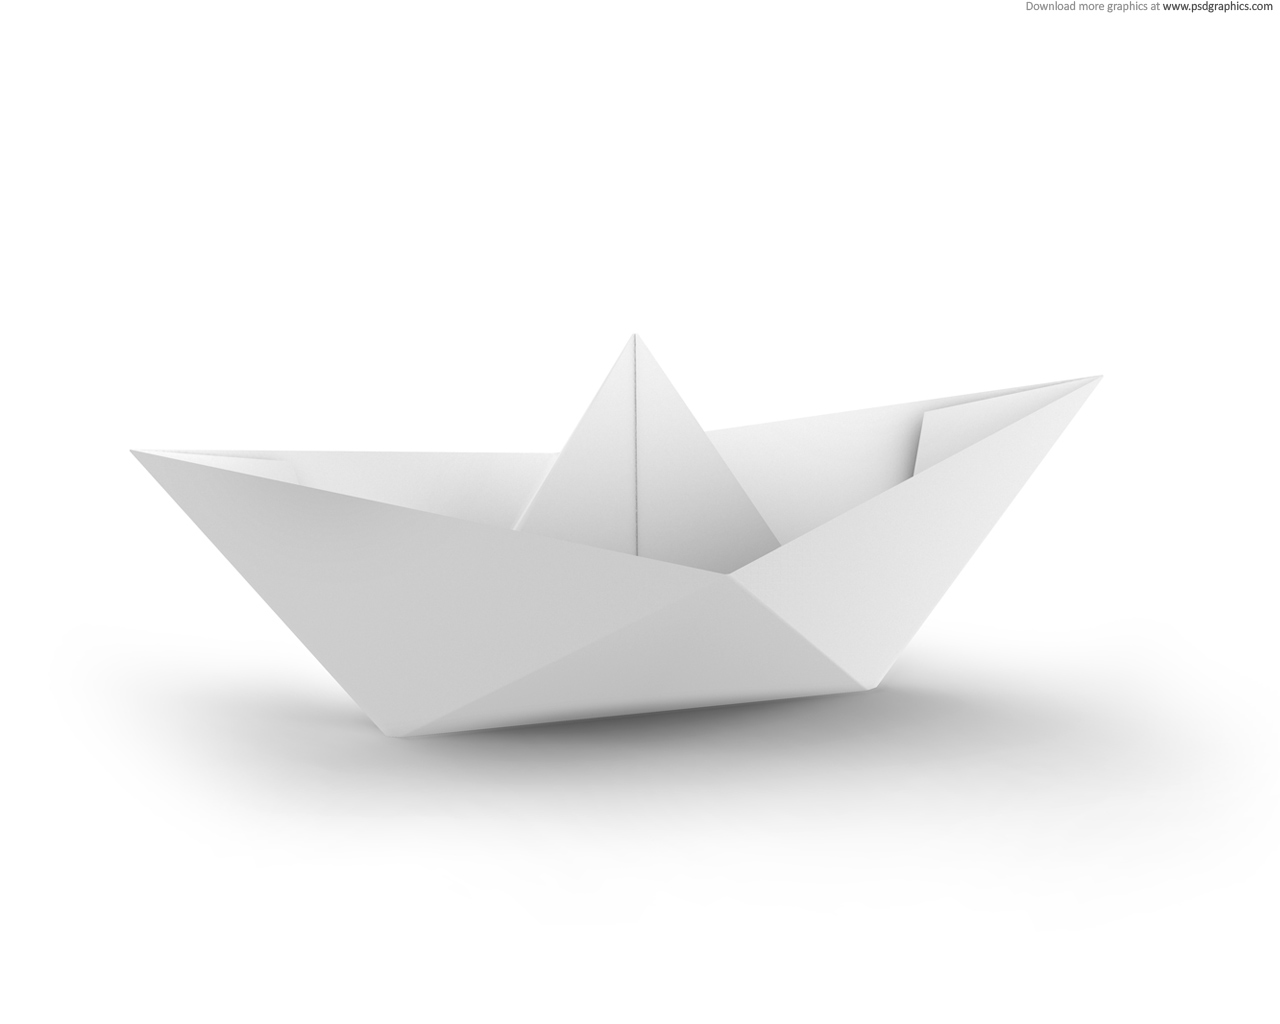 White And Blue Paper Boats Psdgraphics